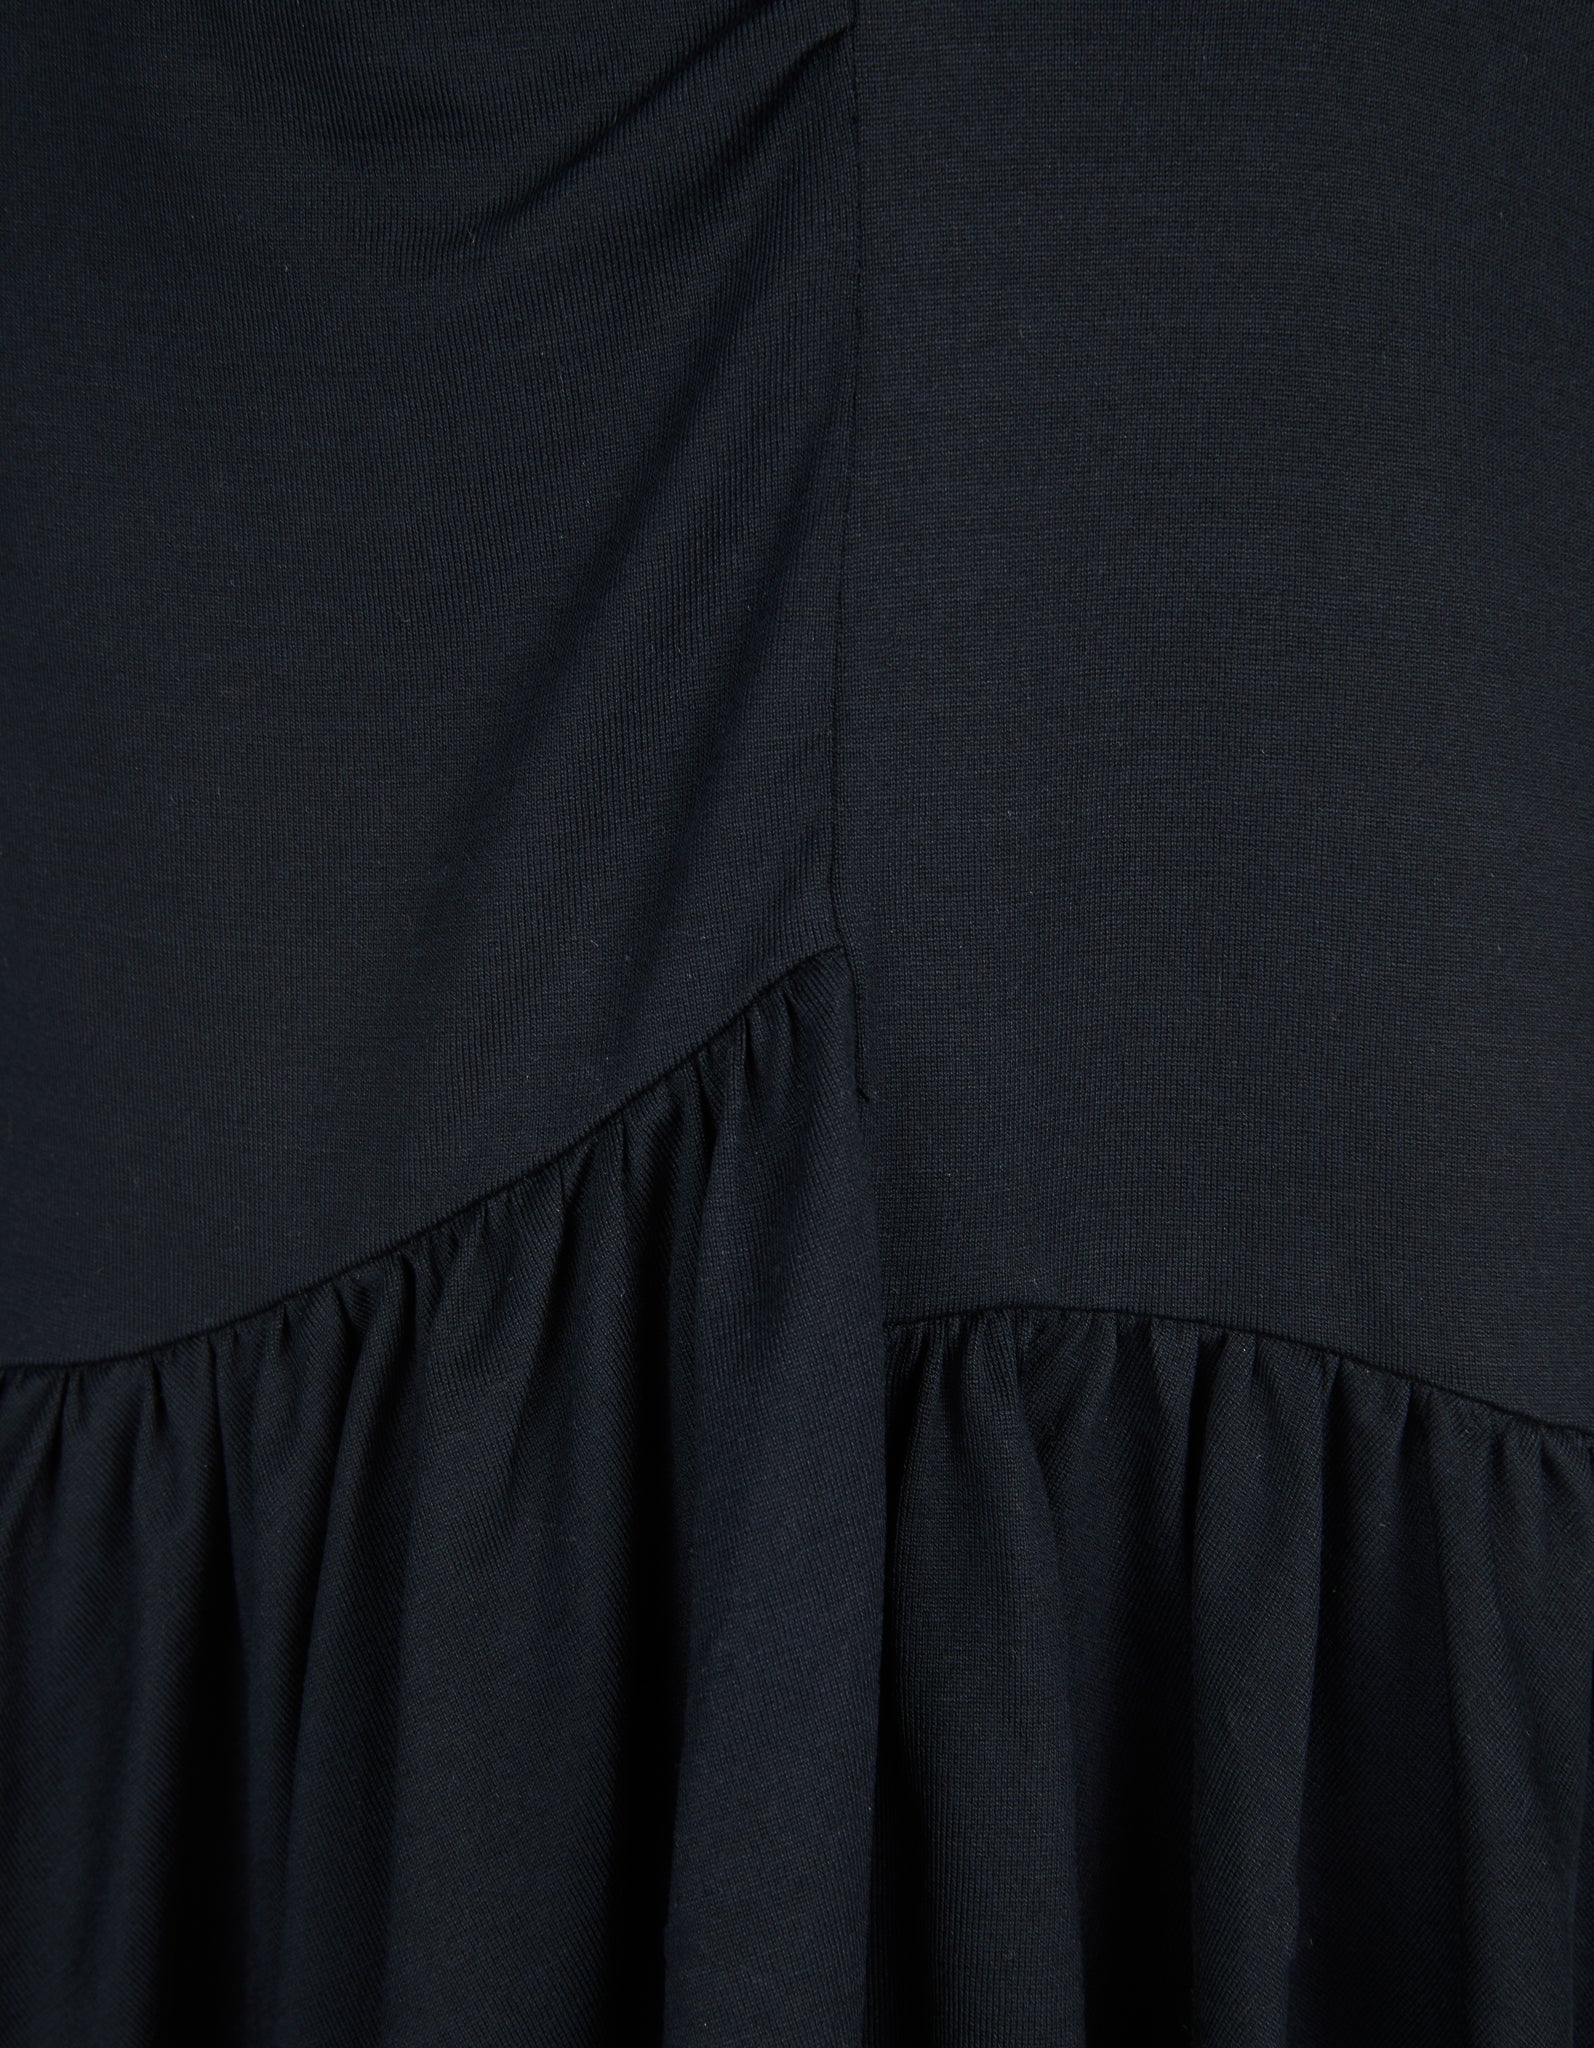 GATHERED SEAMS DRESS IN BLACK